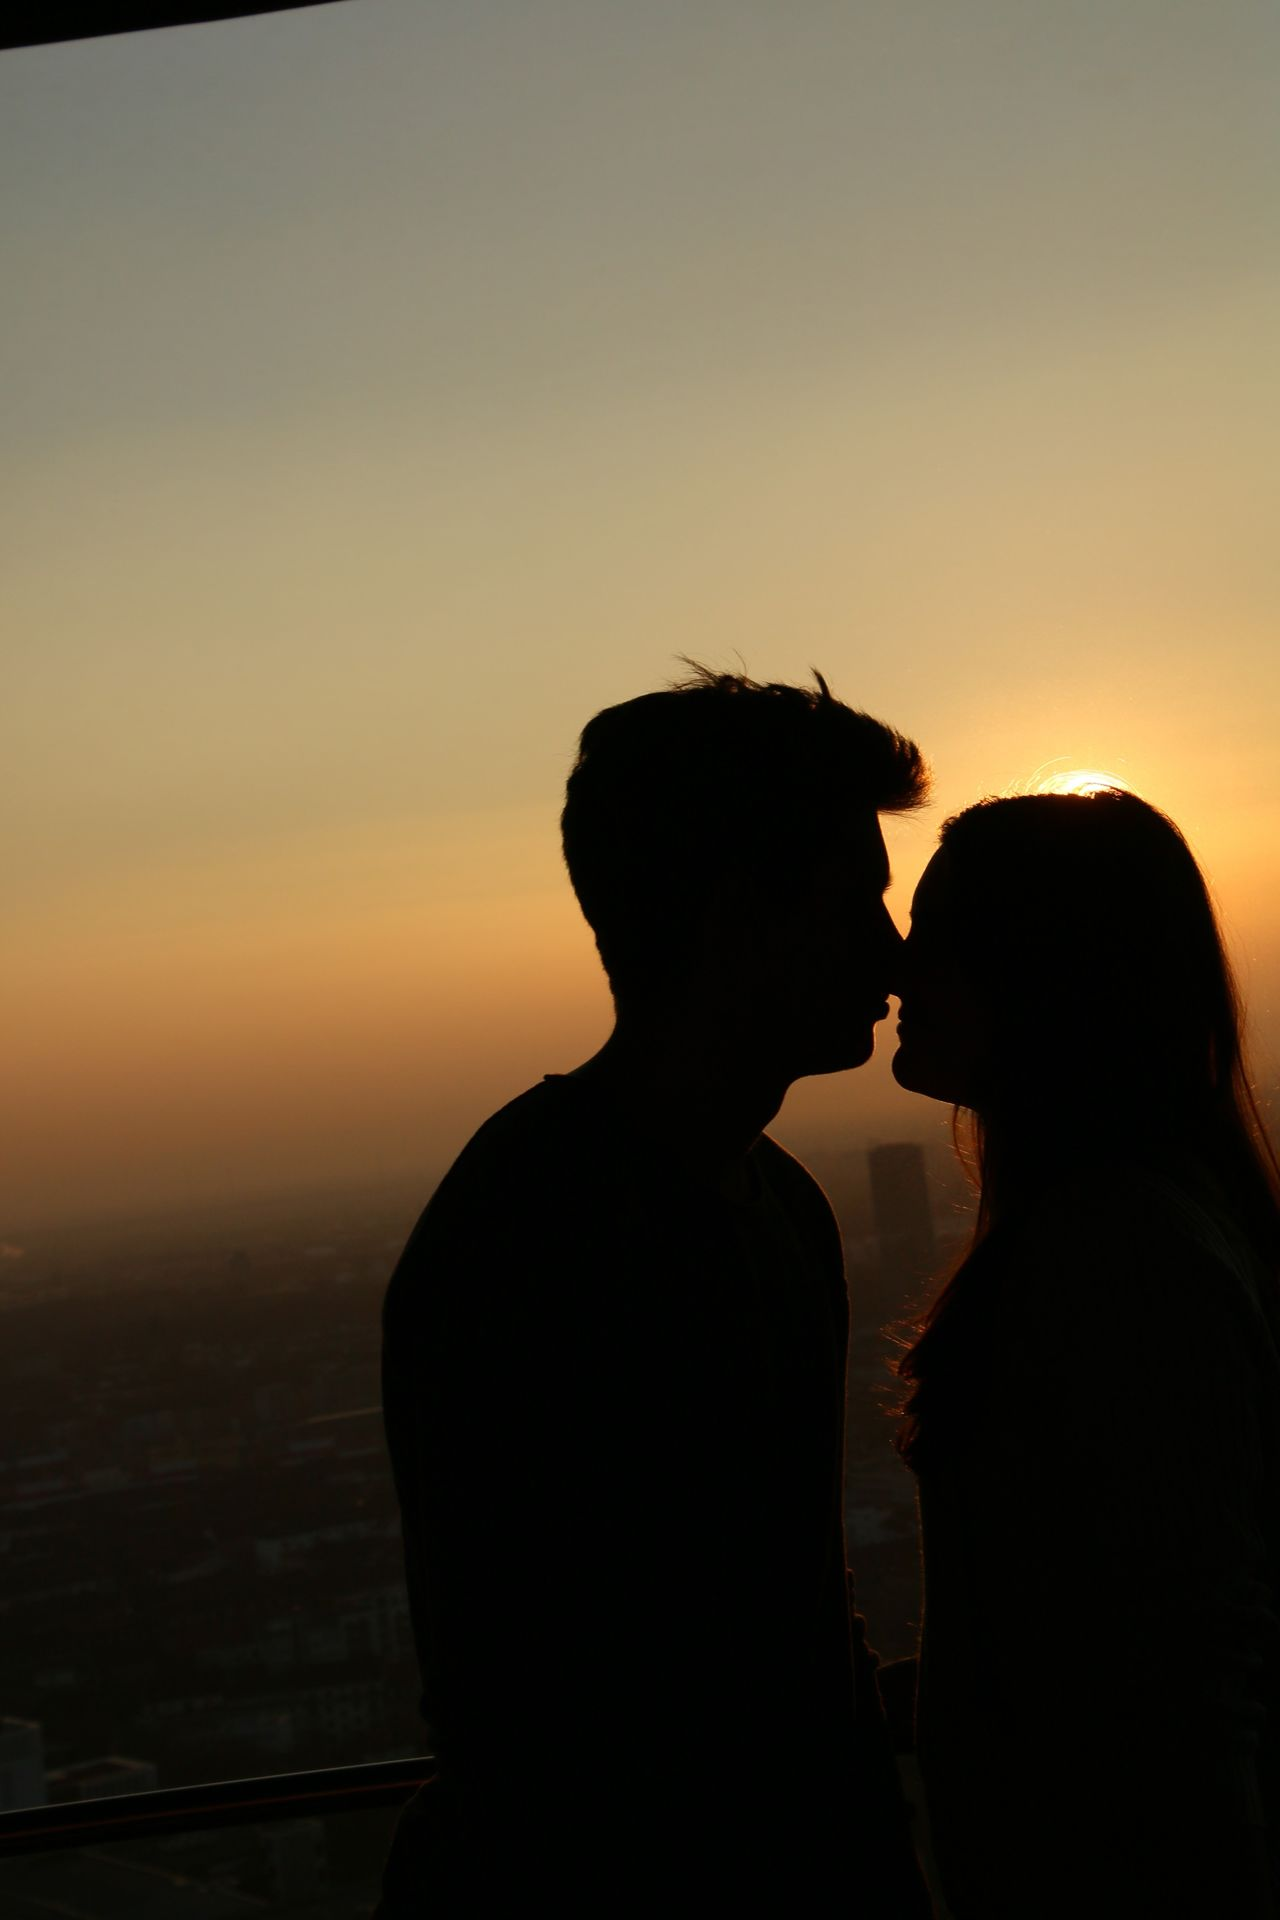 Two People Sunset Silhouette Love Togetherness Couple - Relationship Heterosexual Couple Romance Sky Adult Men Adults Only People Couple Young Adult Only Men Outdoors Day Romantic AMPt_LOVE AMPt - LOVE Mannheim Sunlight Friendship Flirting